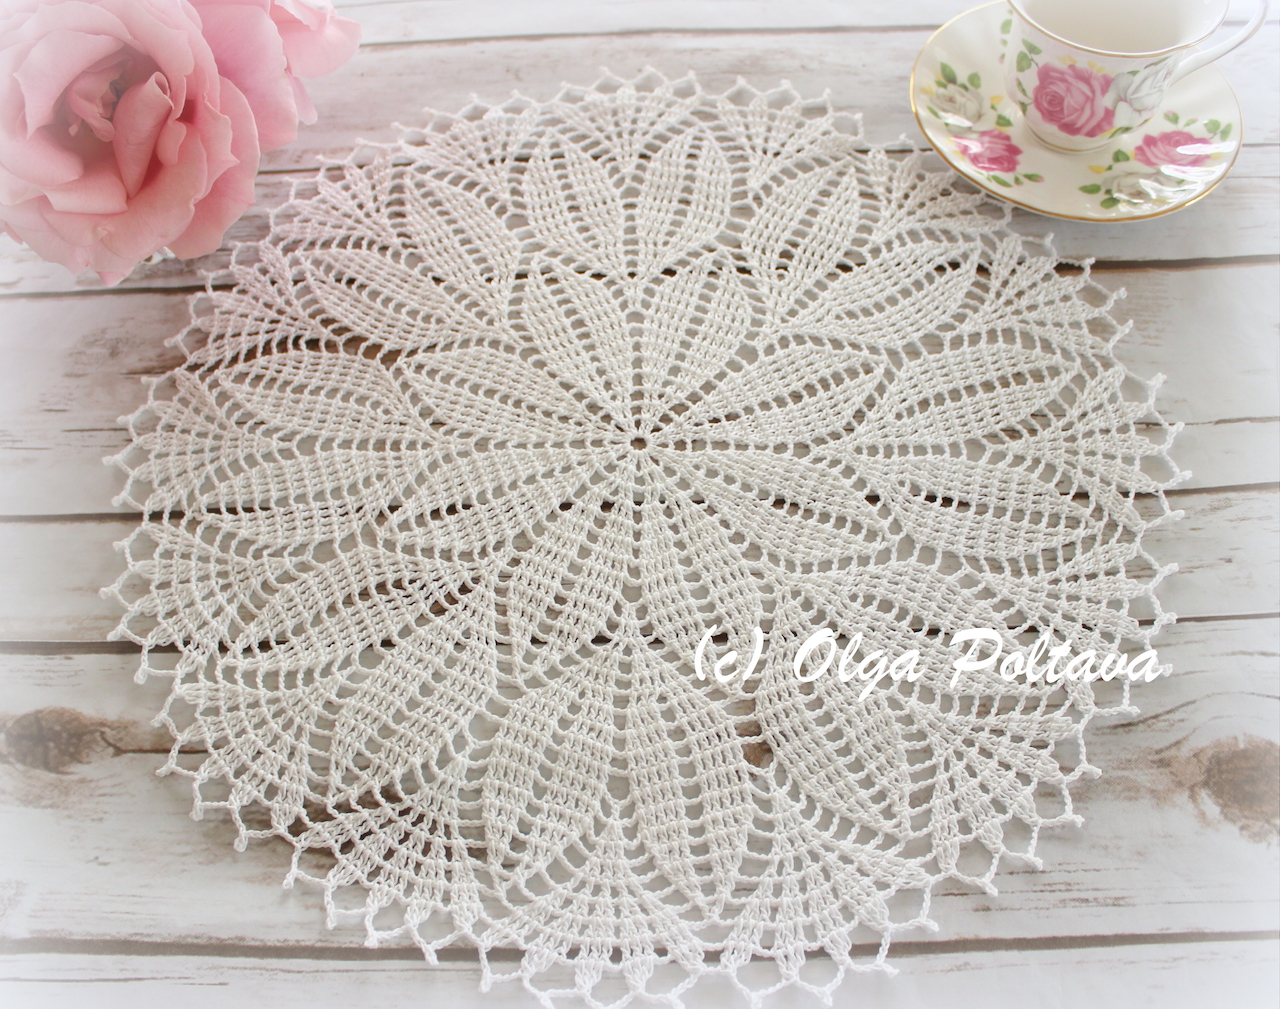 Lacy Crochet: Spring Leaves Doily, My New Design